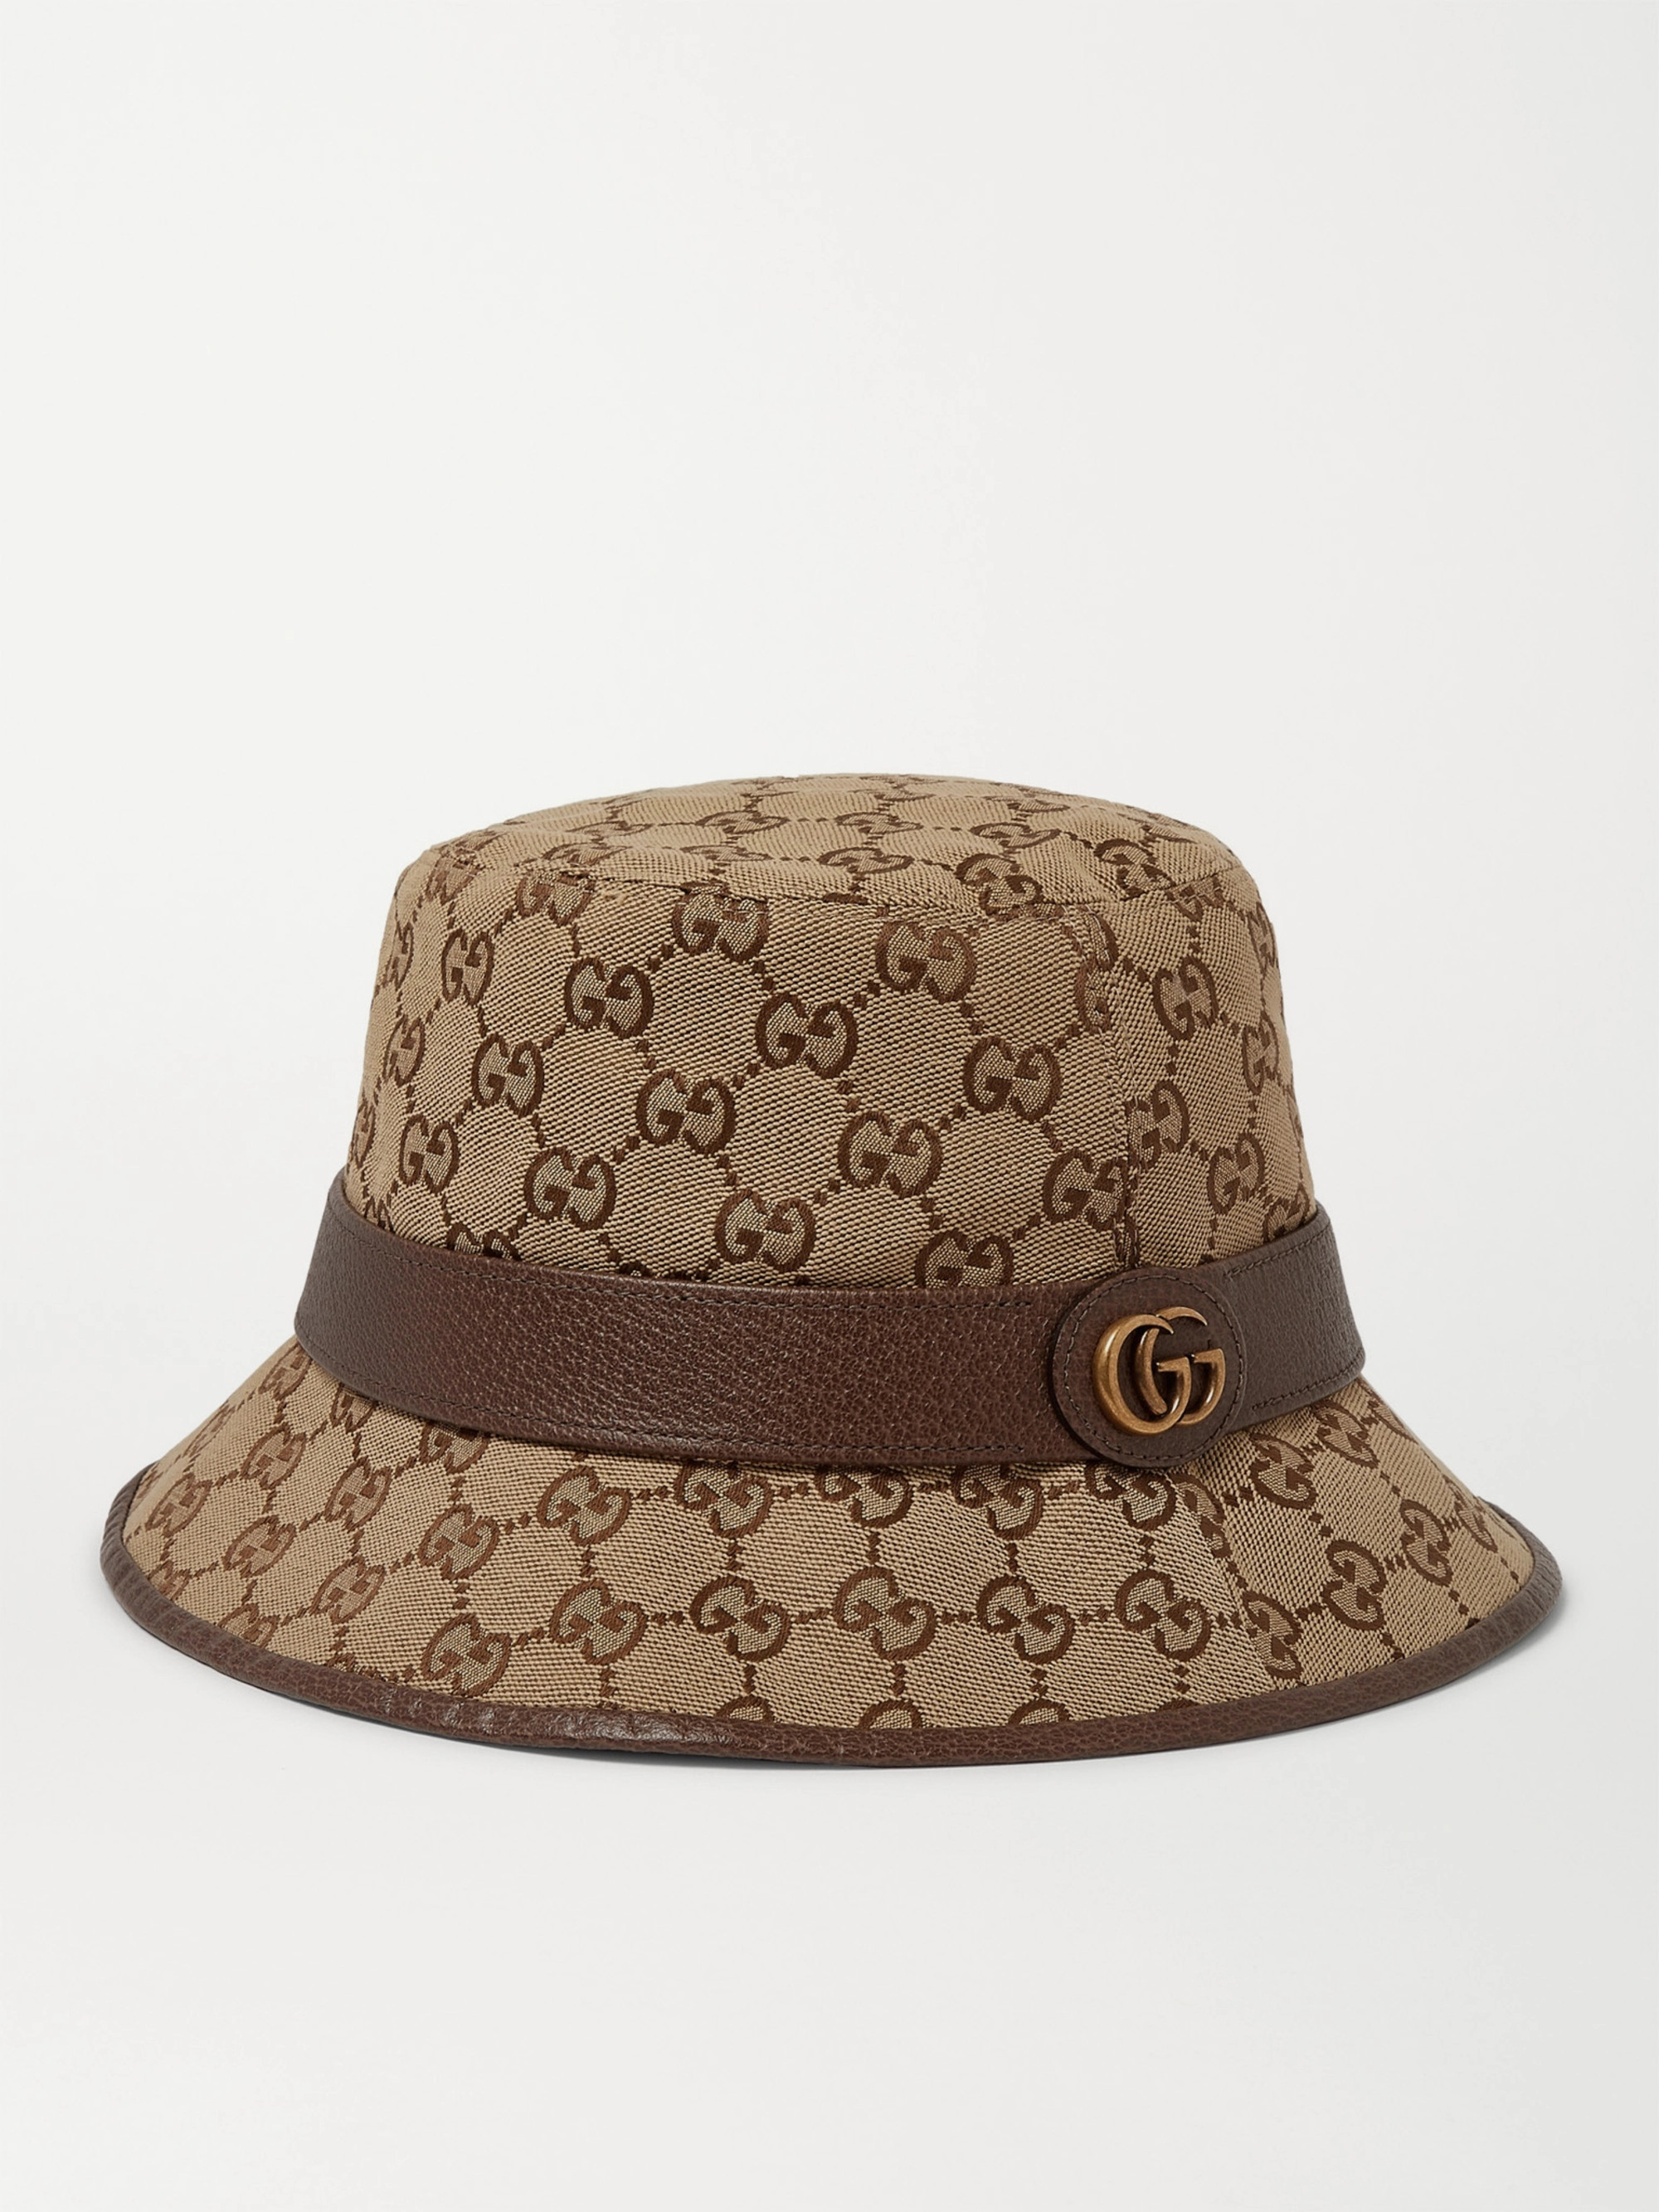 Gucci Leather-Trimmed Monogrammed Canvas Bucket Hat